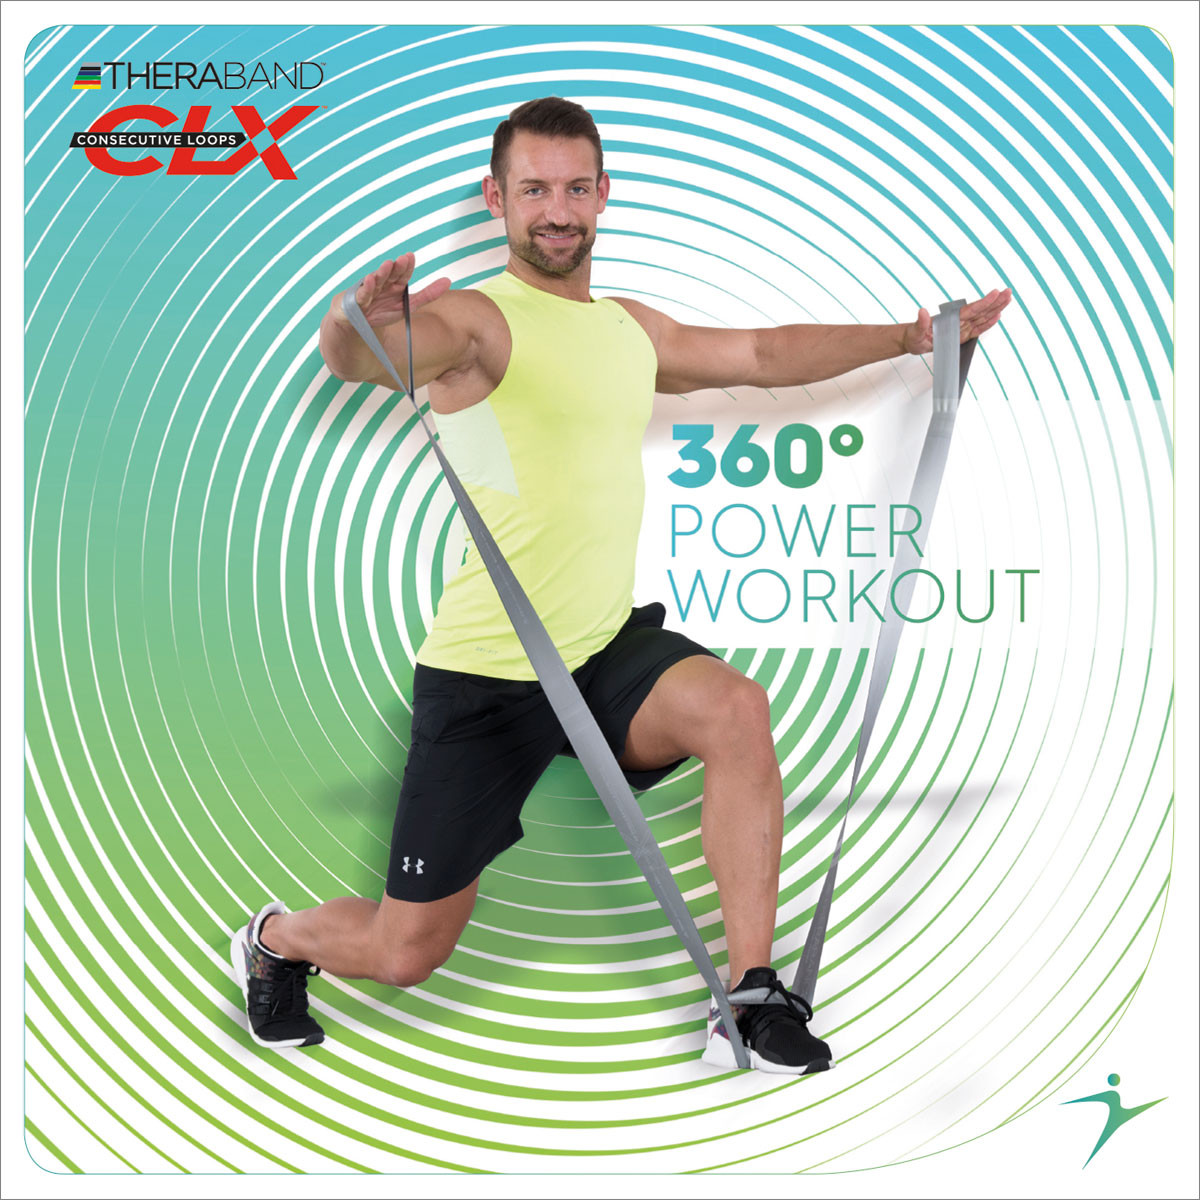 360° POWER WORKOUT